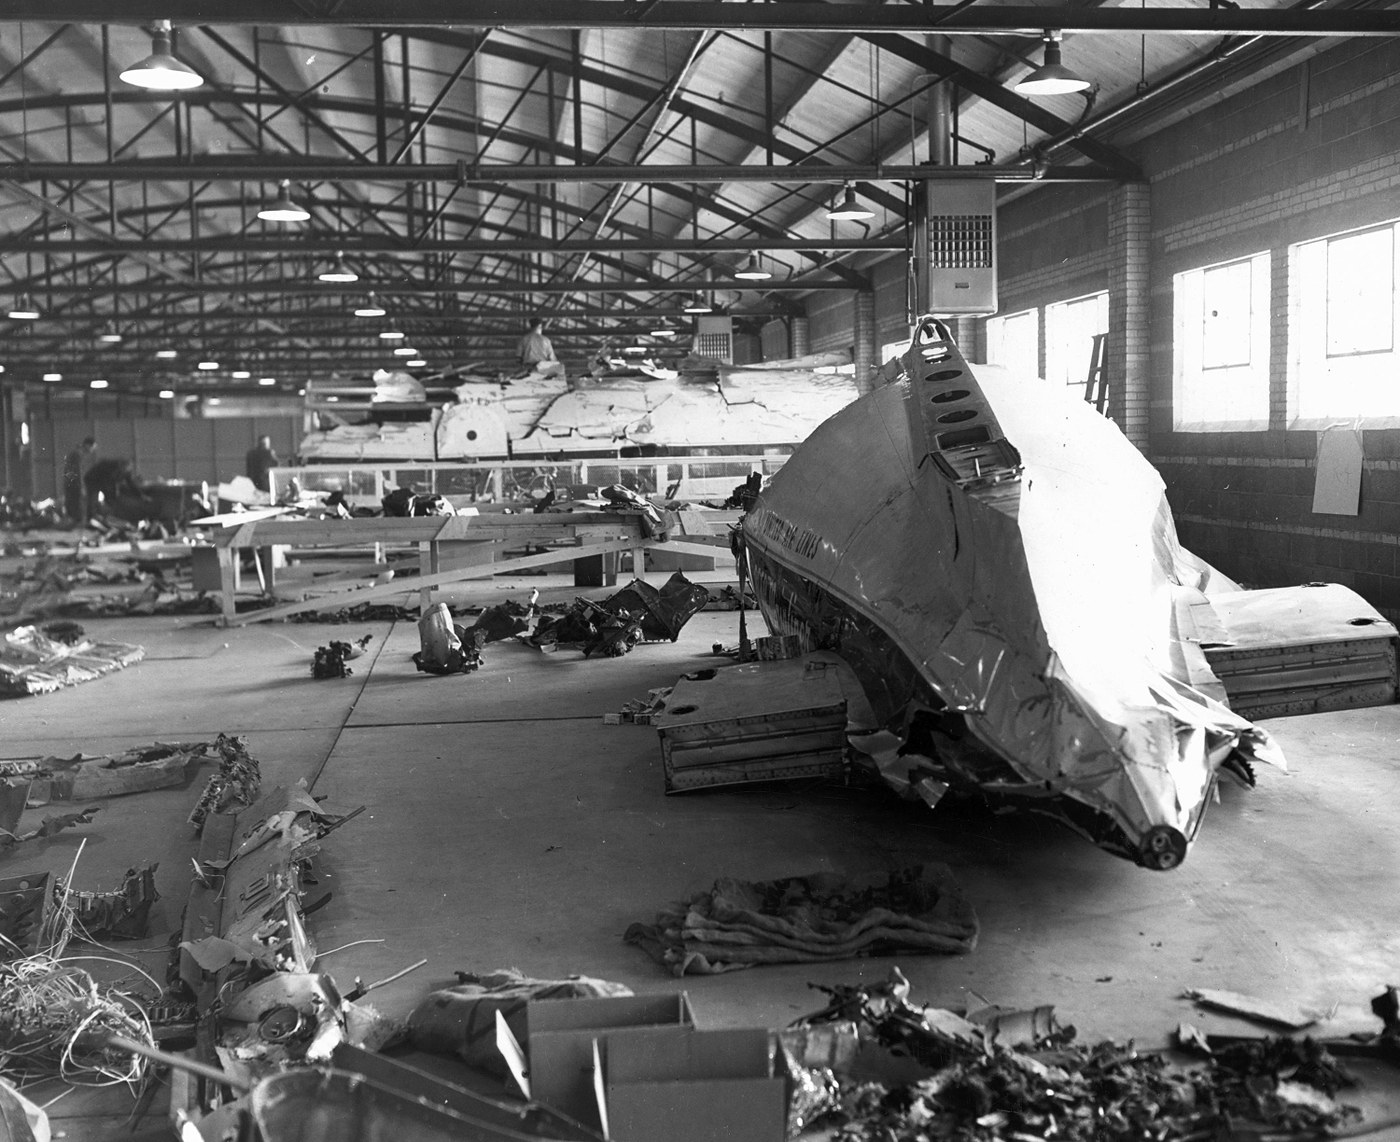 Parts of the wrecked plane were recovered and stored in a Colorado hanger for investigation. (Credit: FBI)